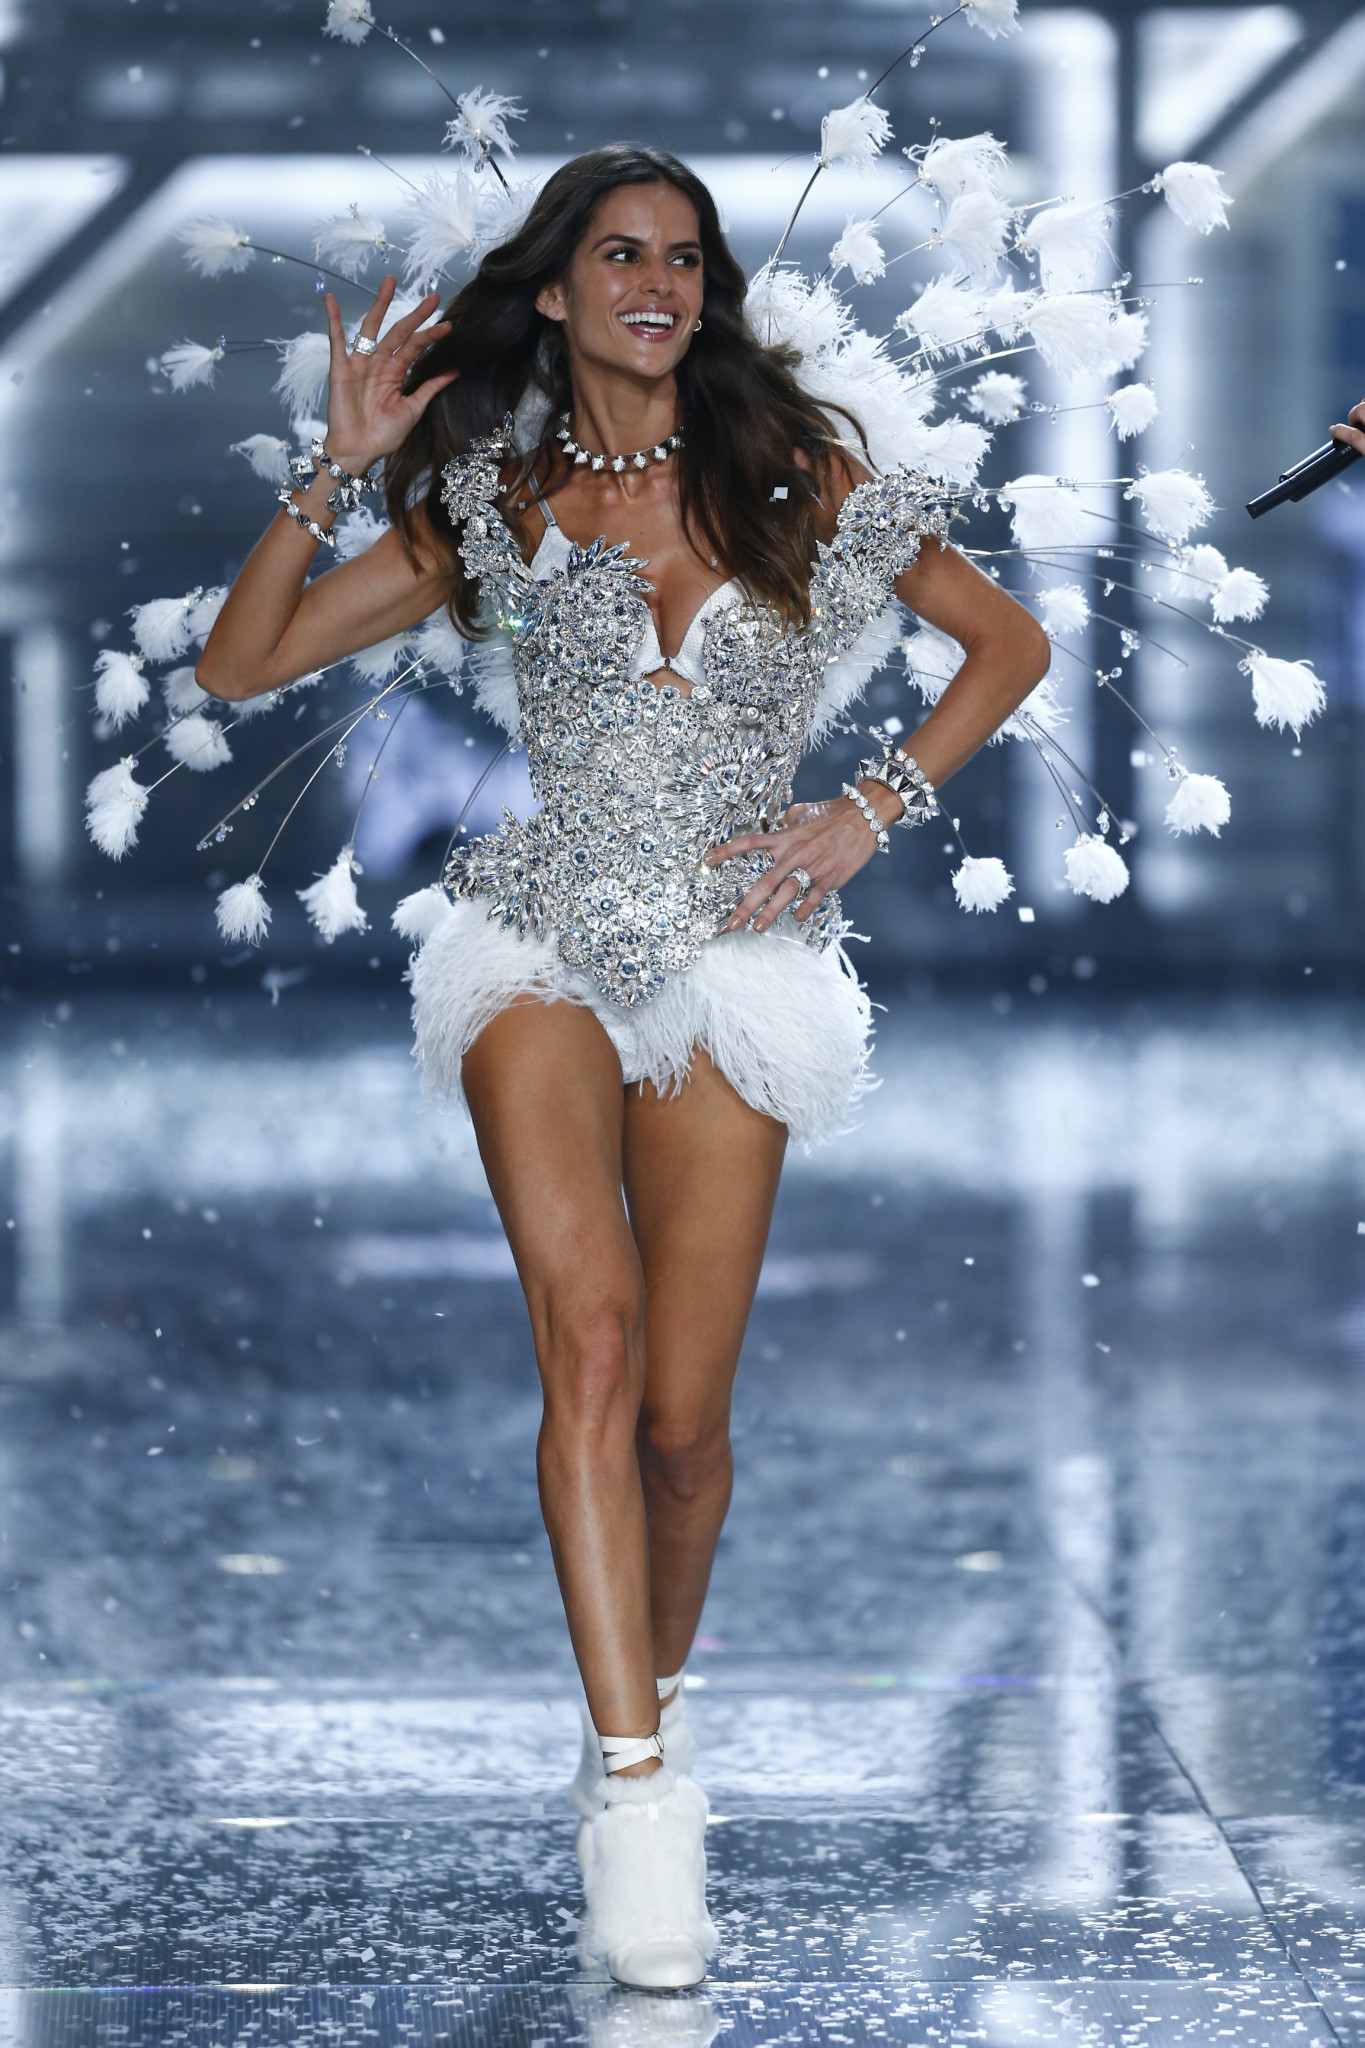 Model Izabel Goulart walks the runway during the 2015 Victoria's Secret Fashion Show at Lexington Avenue Armory on November 10, 2015 in New York City.